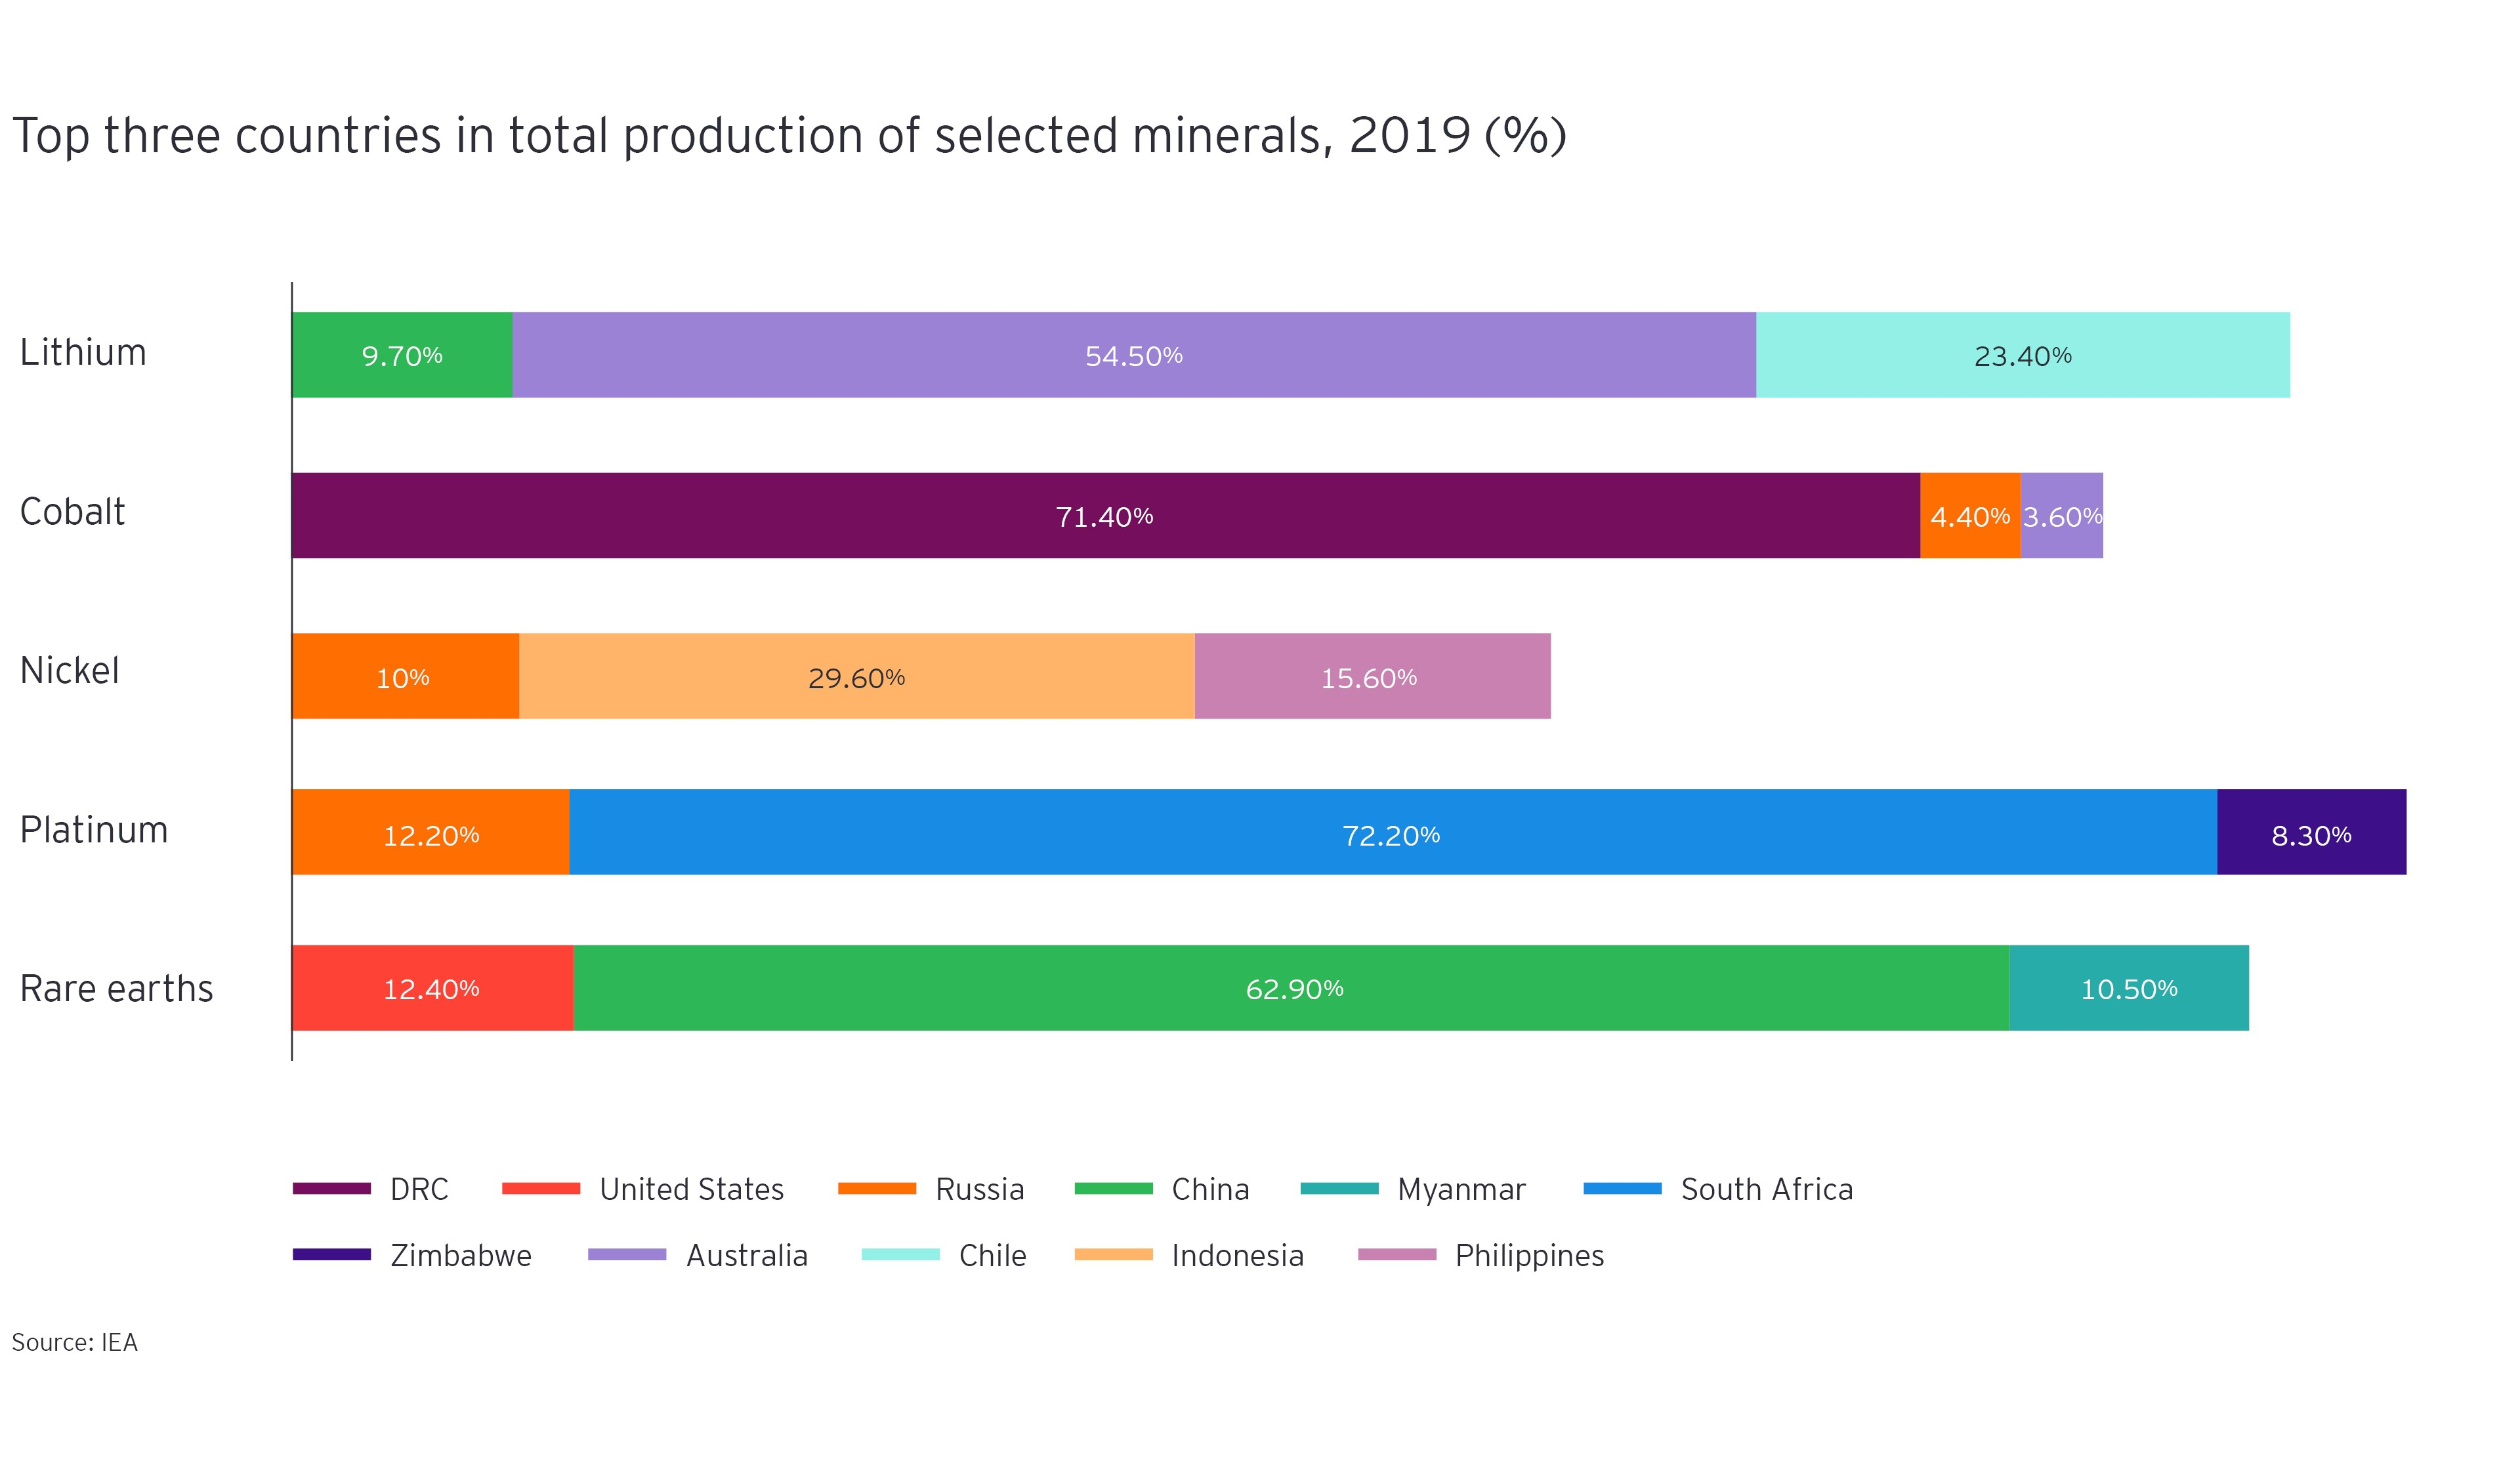 Top three countries in total production of selected minerals, 2019 (%)